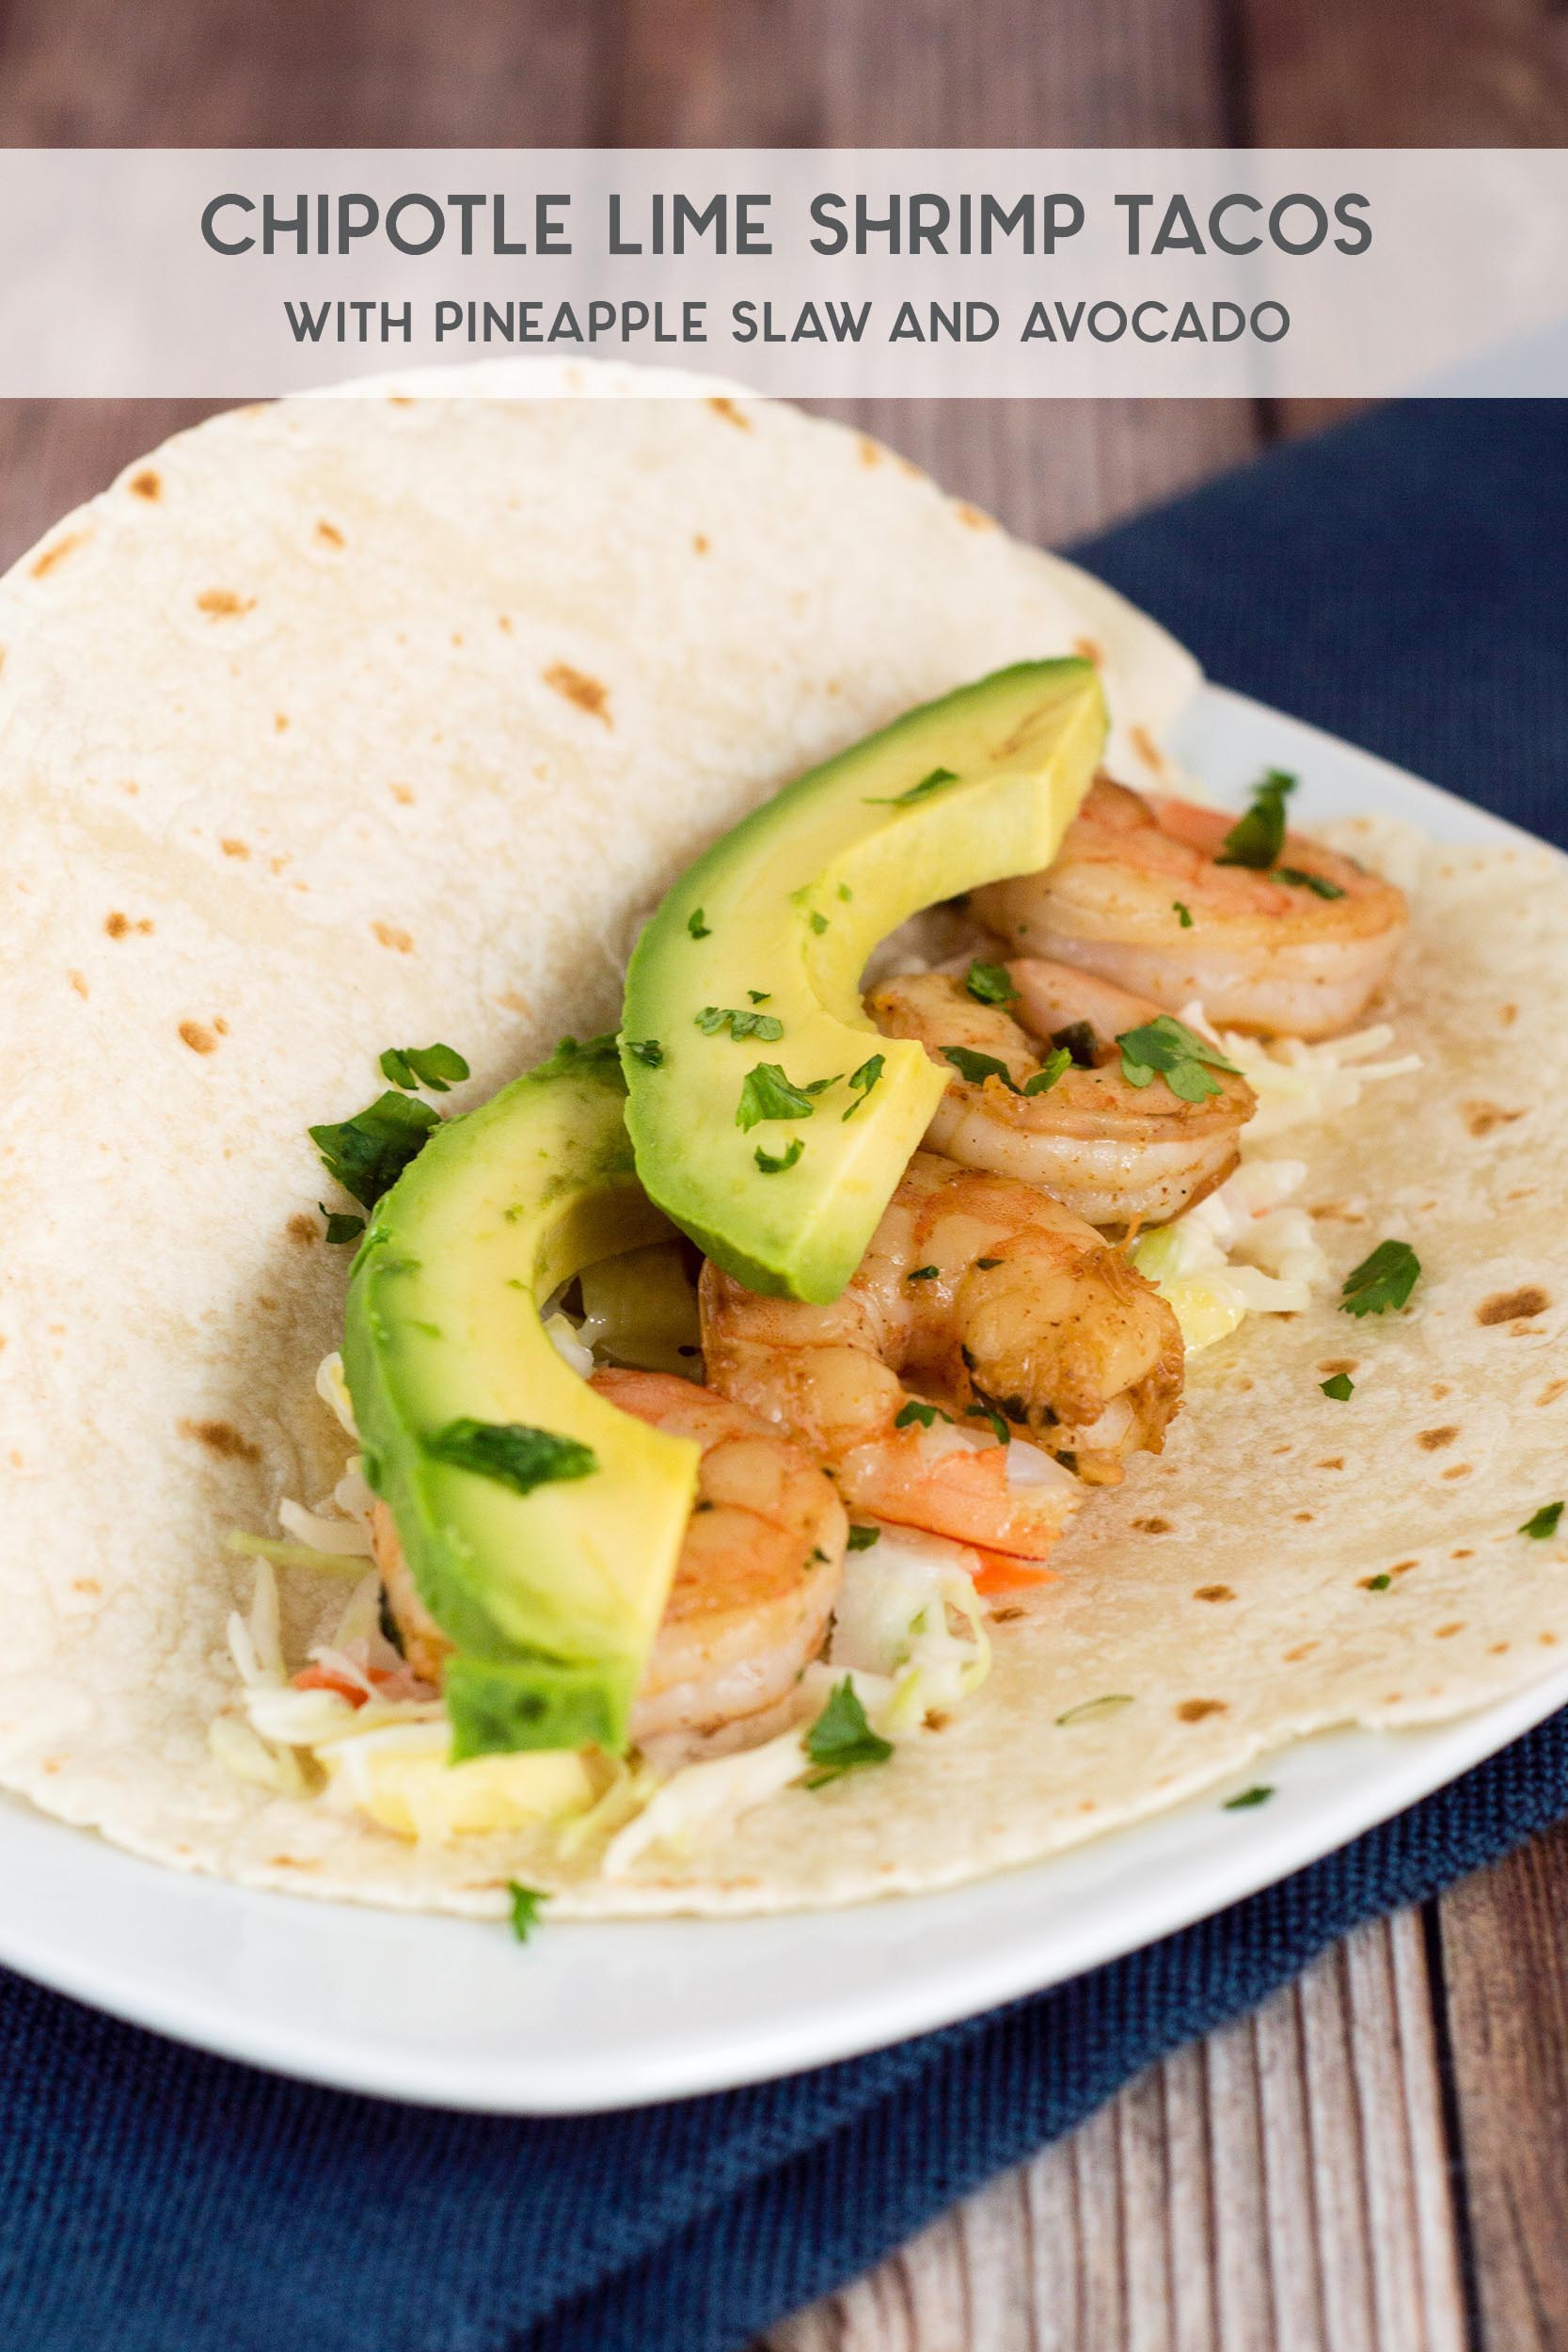 With a touch of avocado and pineapple slaw for some sweetness, these chipotle lime shrimp tacos are the perfect combinationof spicy and fruity!